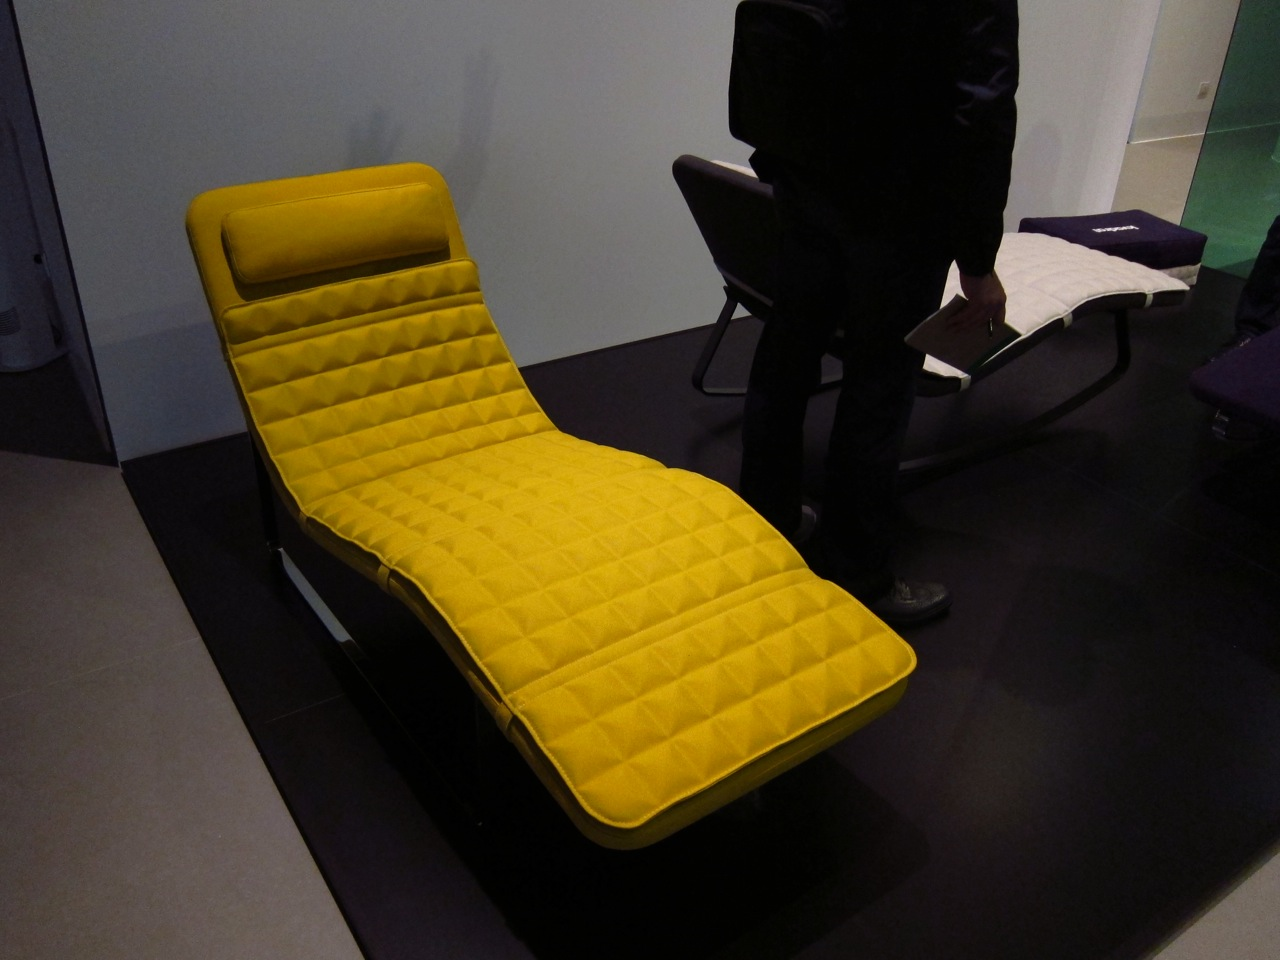 For the 10th anniversary of his Landscape chaise longue, designer Jeffrey Bernett revisited his creation for B&B Italia by adding a rocking version, and adding a retro-fittable custom foam cover produced in conjunction with Kvadrat.